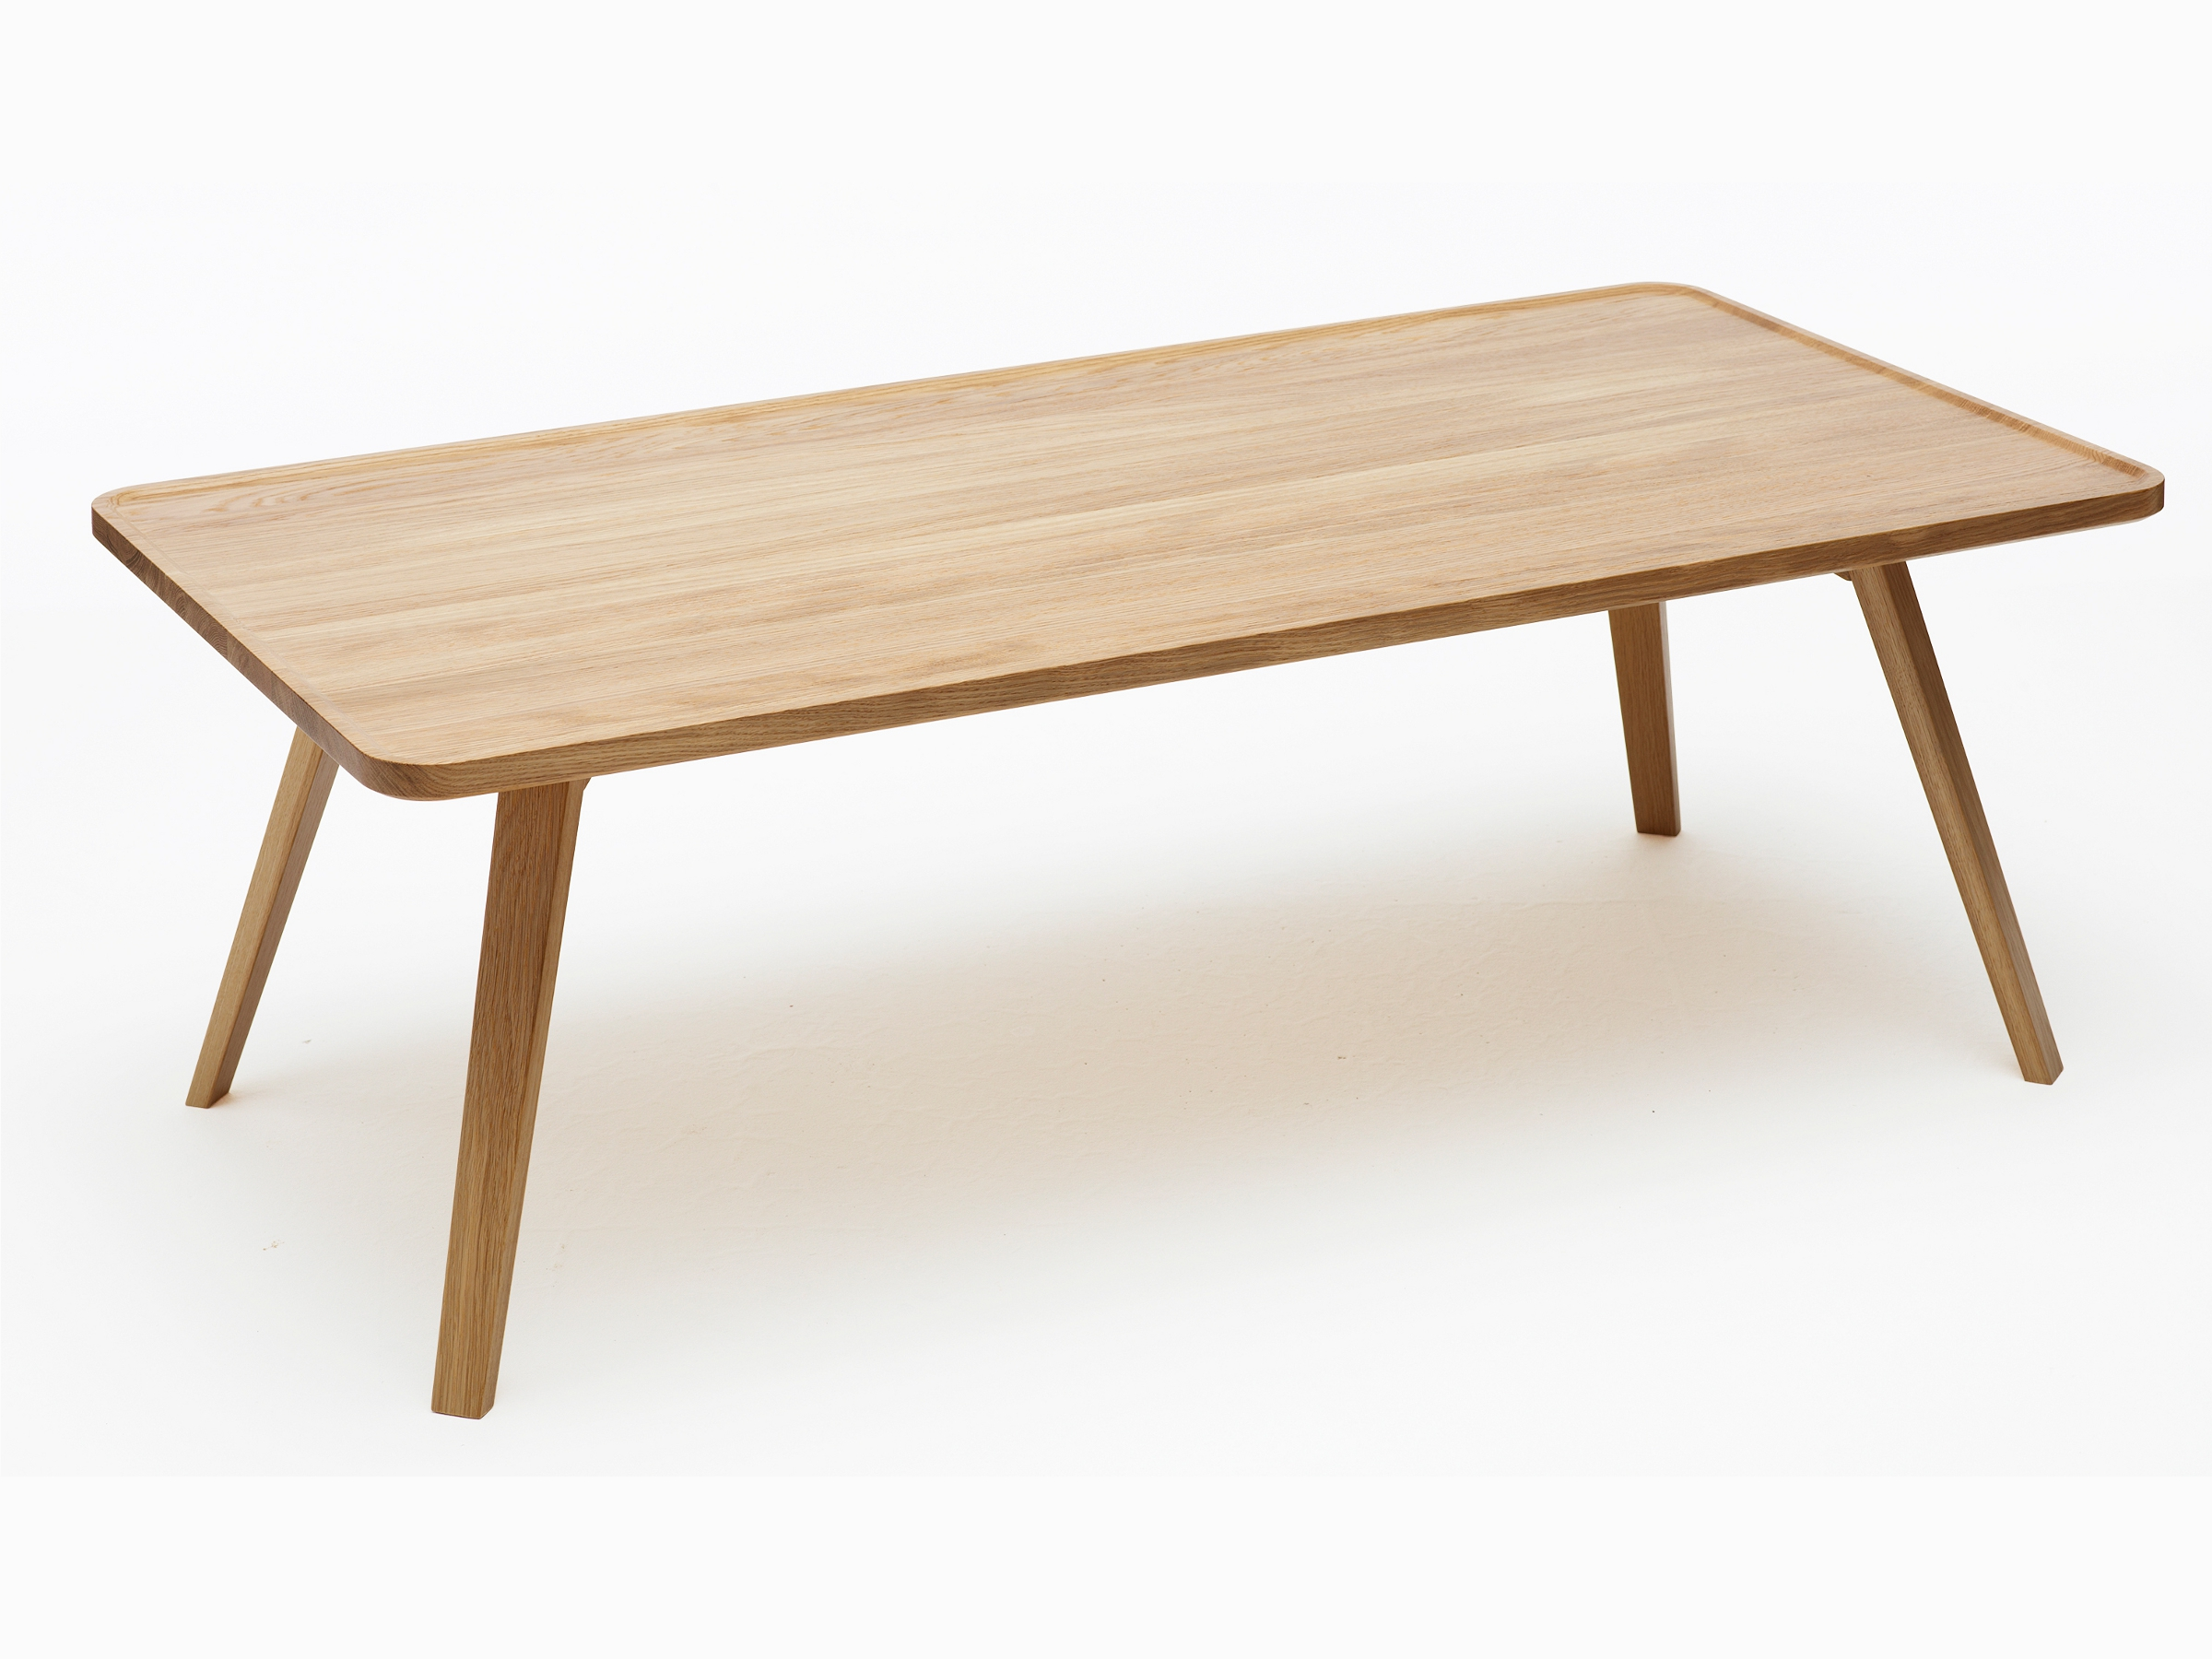 Table basse rectangulaire en bois massif mill by karl for Table basse en bois